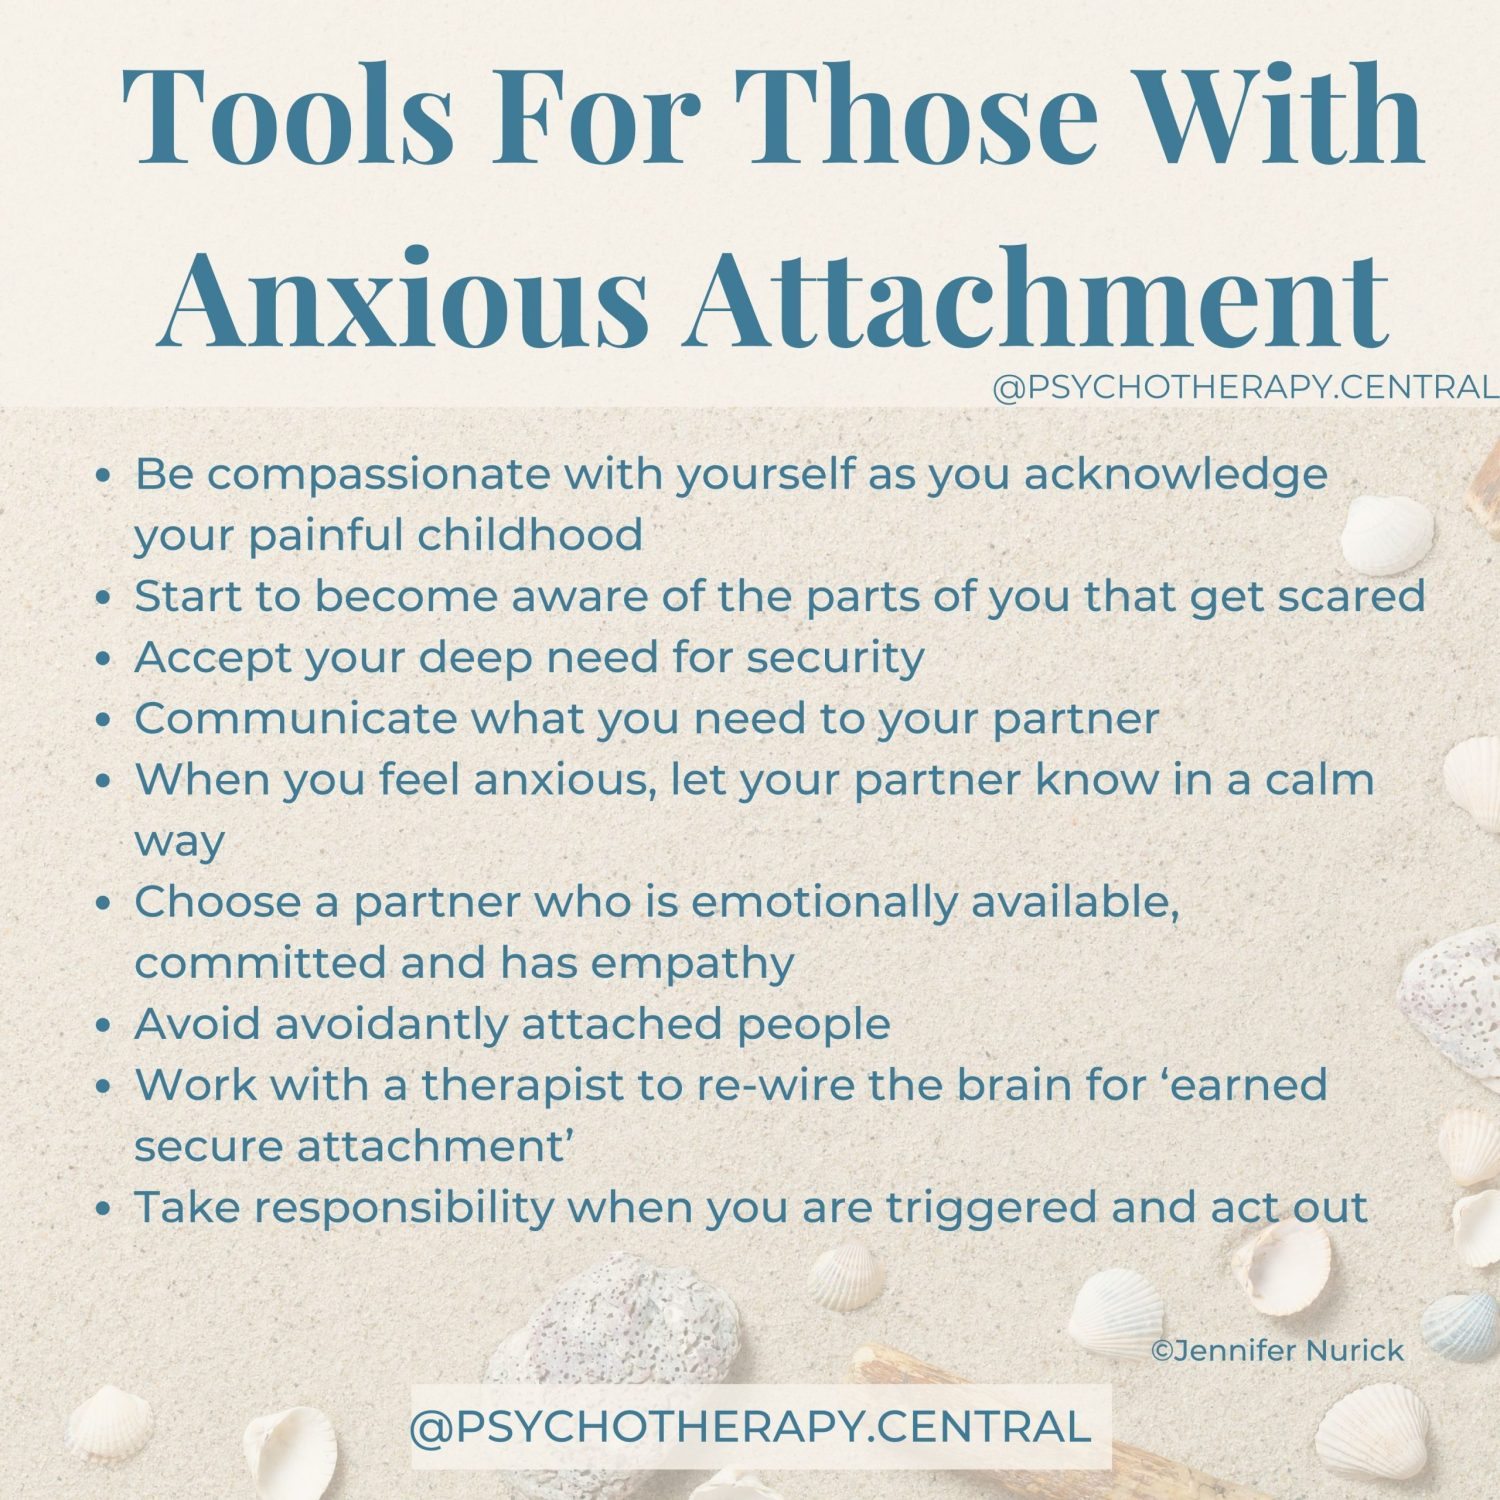 Be compassionate with yourself as you acknowledge your painful childhood Start to become aware of the parts of you that get scared Accept your deep need for security Communicate what you need to your partner When you feel anxious, let your partner know in a calm way Choose a partner who is emotionally available, committed and has empathy Avoid avoidantly attached people Work with a therapist to re-wire the brain for 'earned secure attachment' Take responsibility when you are triggered and act out